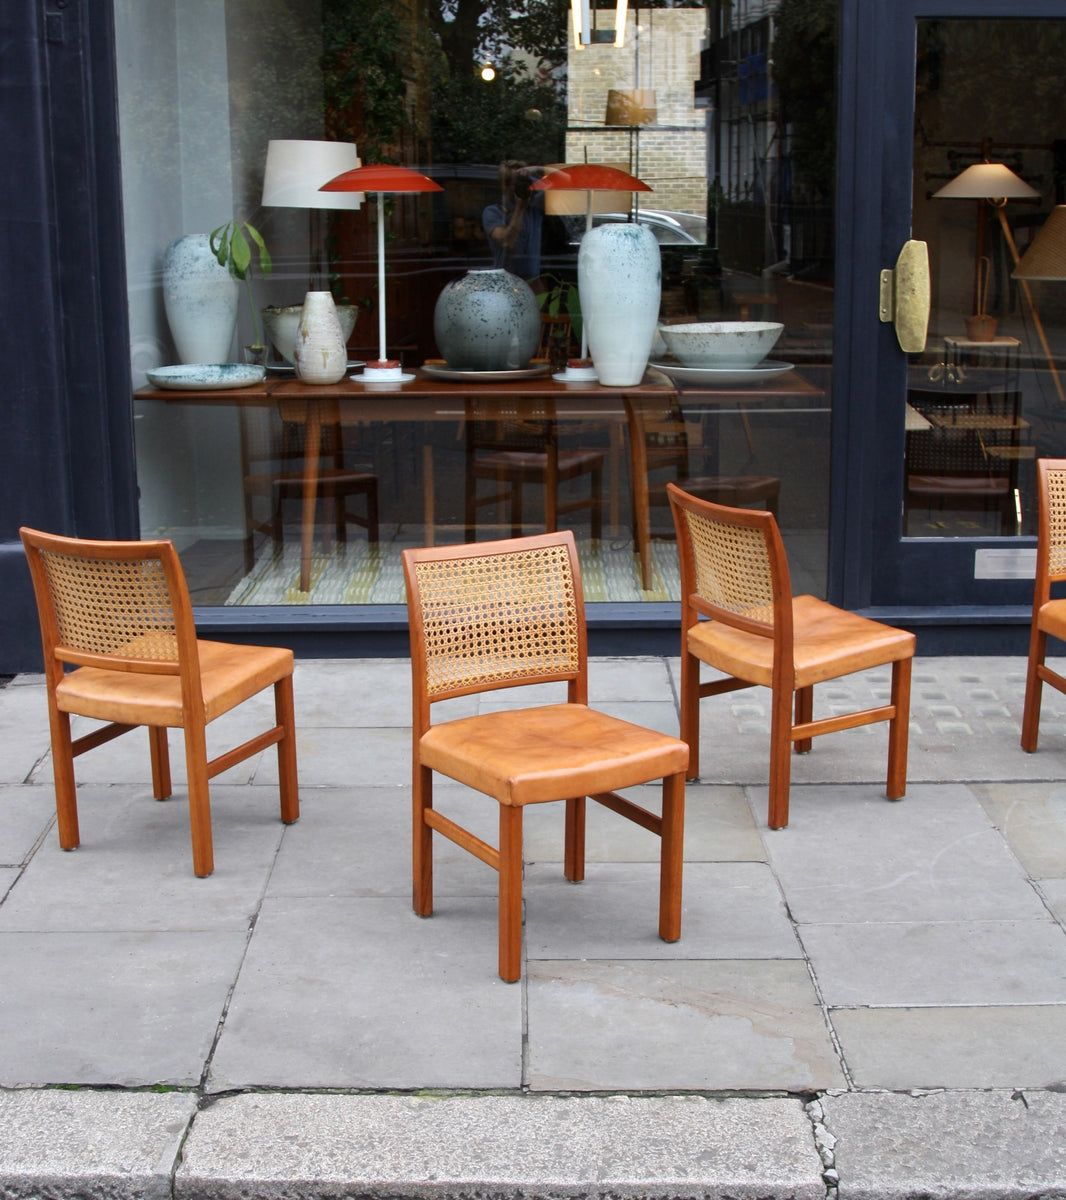 Four Teak, Leather & Cane Chairs Carl-Gustav Hiort af Ornäs  - Image 11